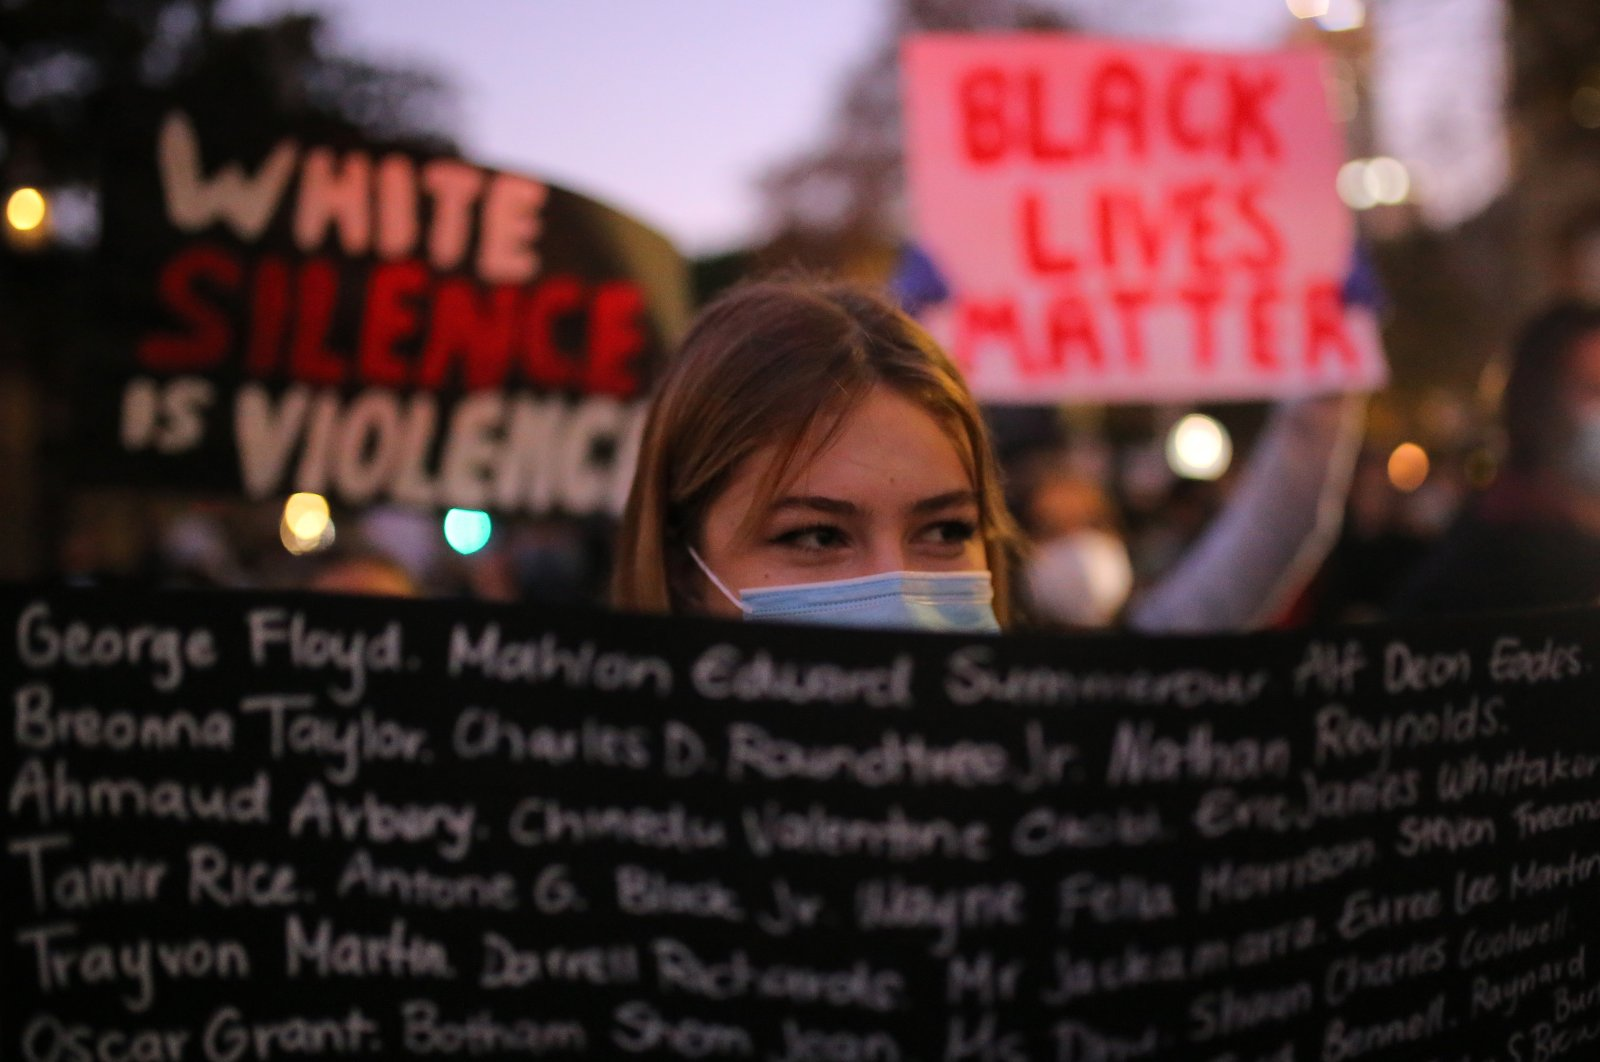 People take part in a Black Lives Matter protest following the deadly arrest and death of George Floyd in Minneapolis, in Sydney, Australia, June 2, 2020. (EPA Photo)